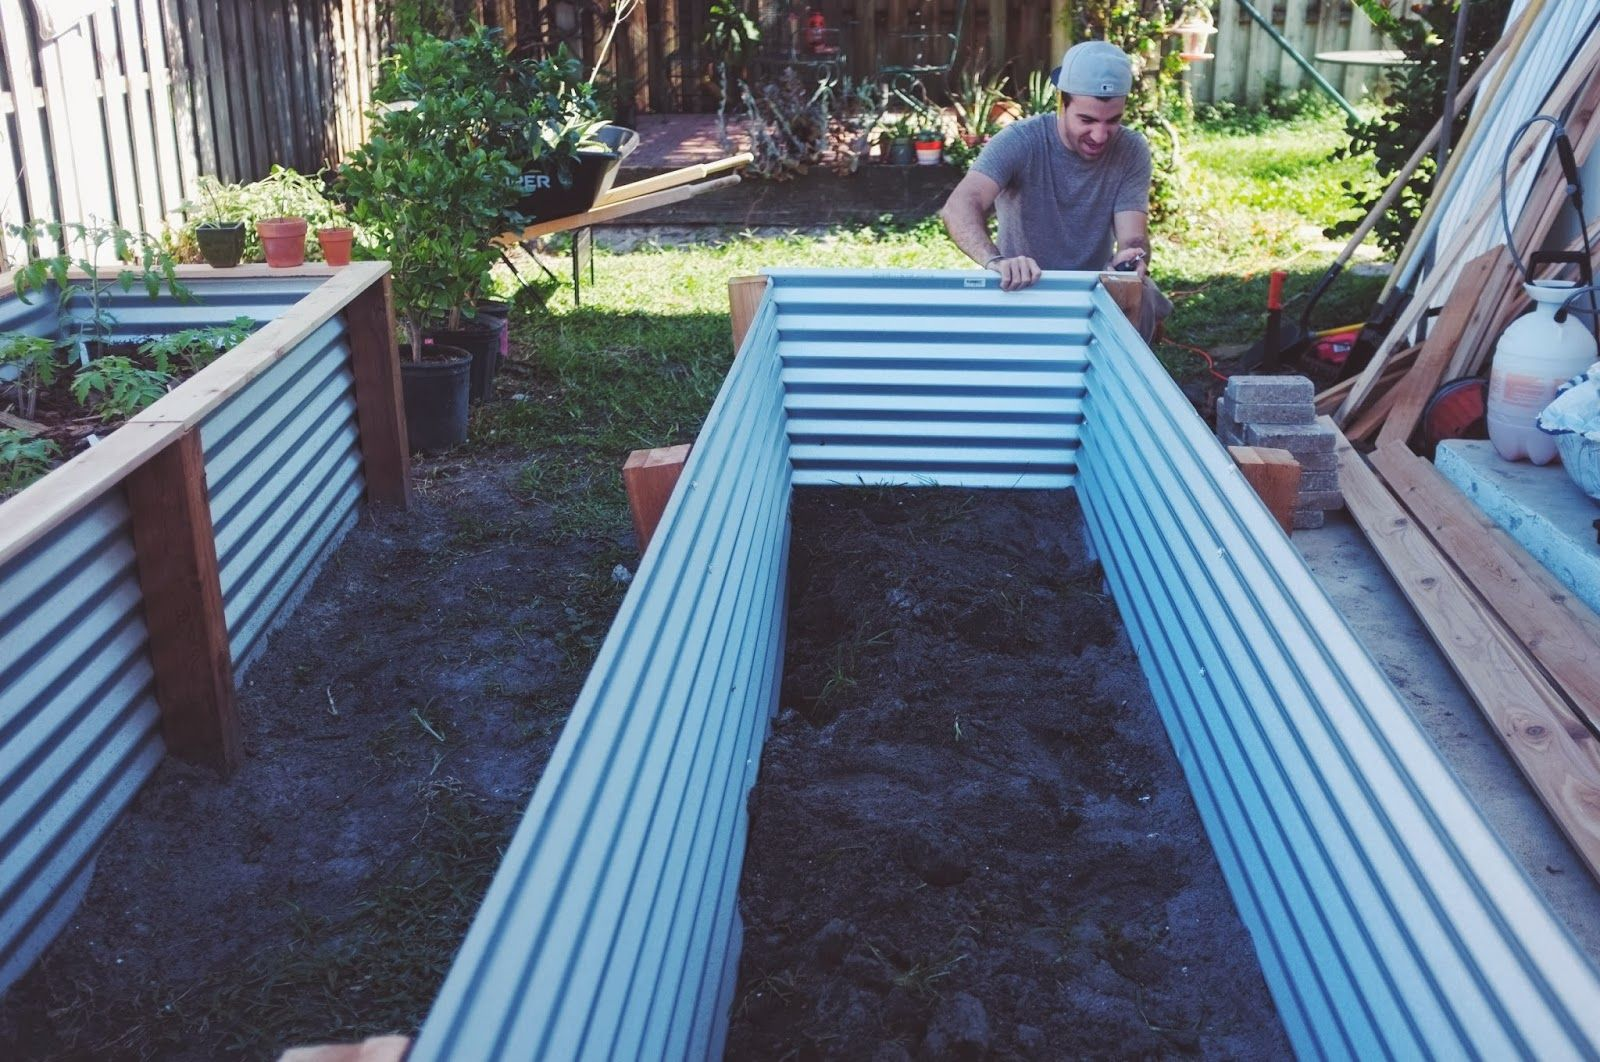 Ohdeardrea Our Raised Beds Easy Metal Wood Garden Bed How To Diy For The Home